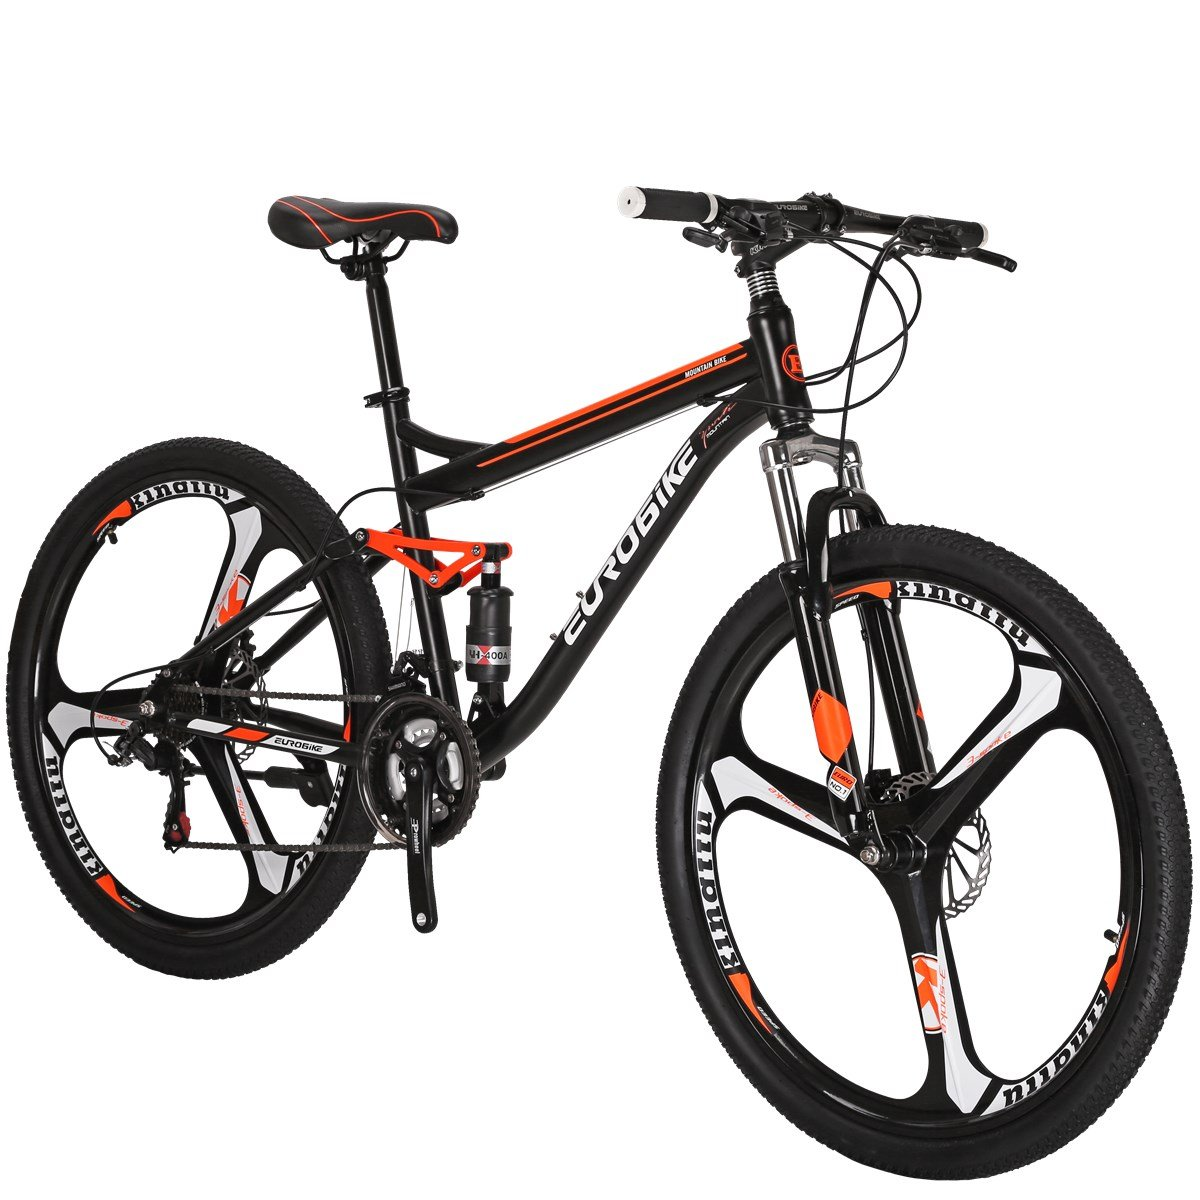 Eurobike Moutain Bike S7 Bicycle 21 Speed Mtb 27 5 Inches